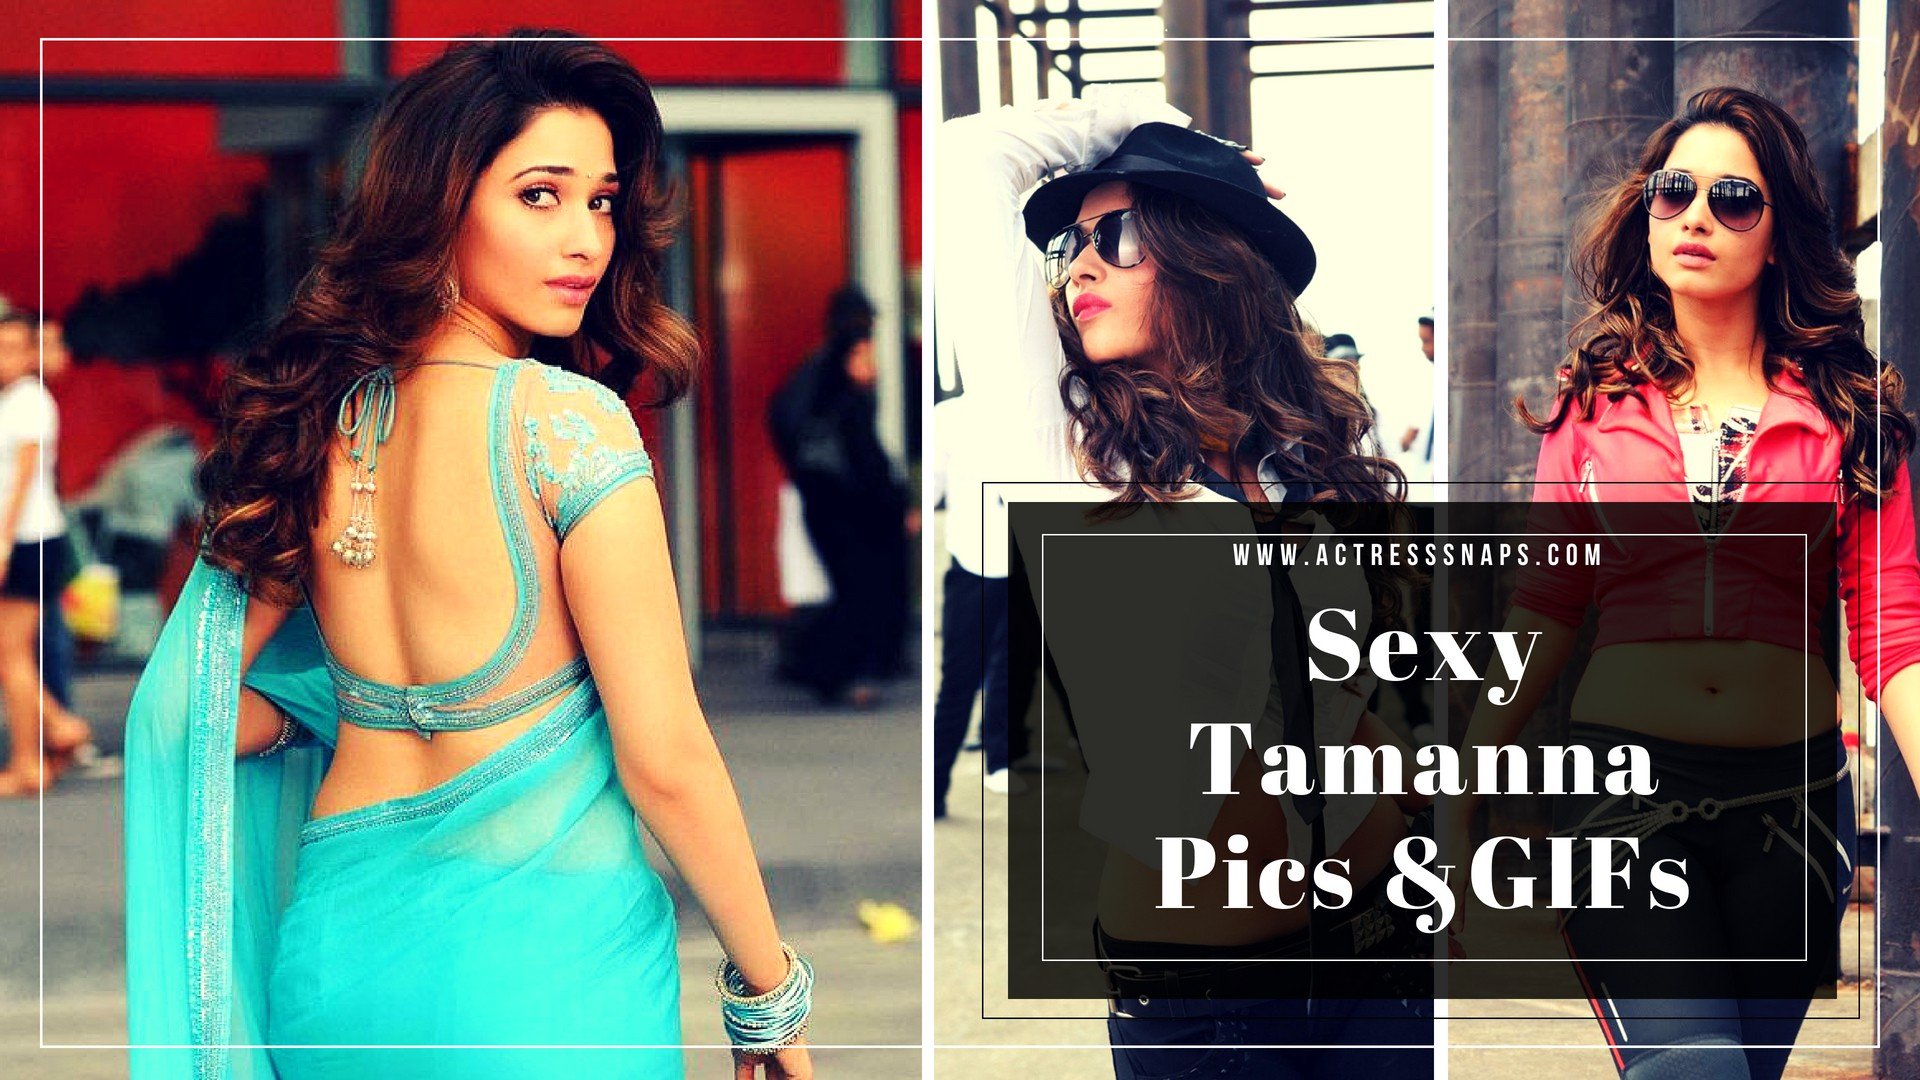 Sexy Telugu Actress Tamanna Images and GIFs - Sexy Actress Pictures | Hot Actress Pictures